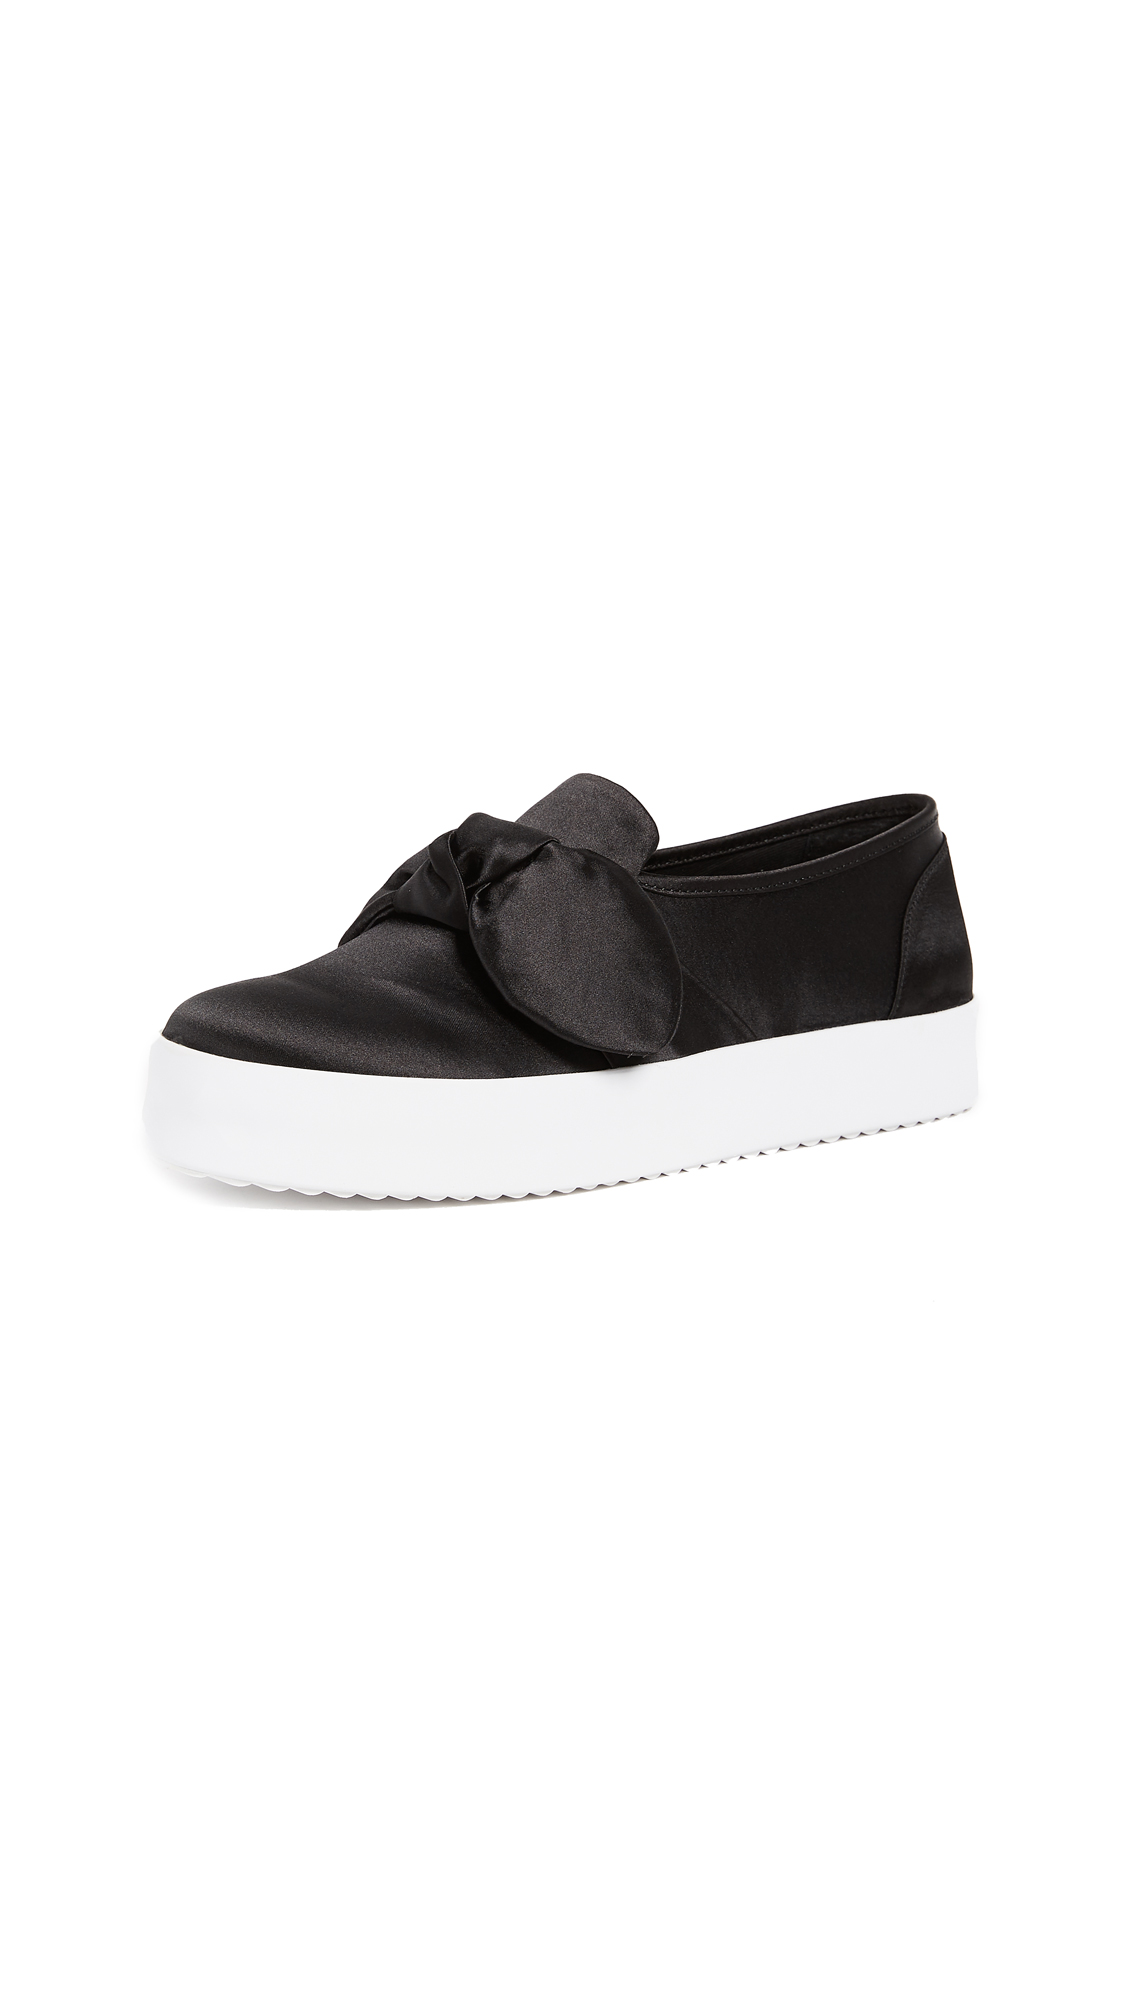 Rebecca Minkoff Stacey Bow Sneakers - Black